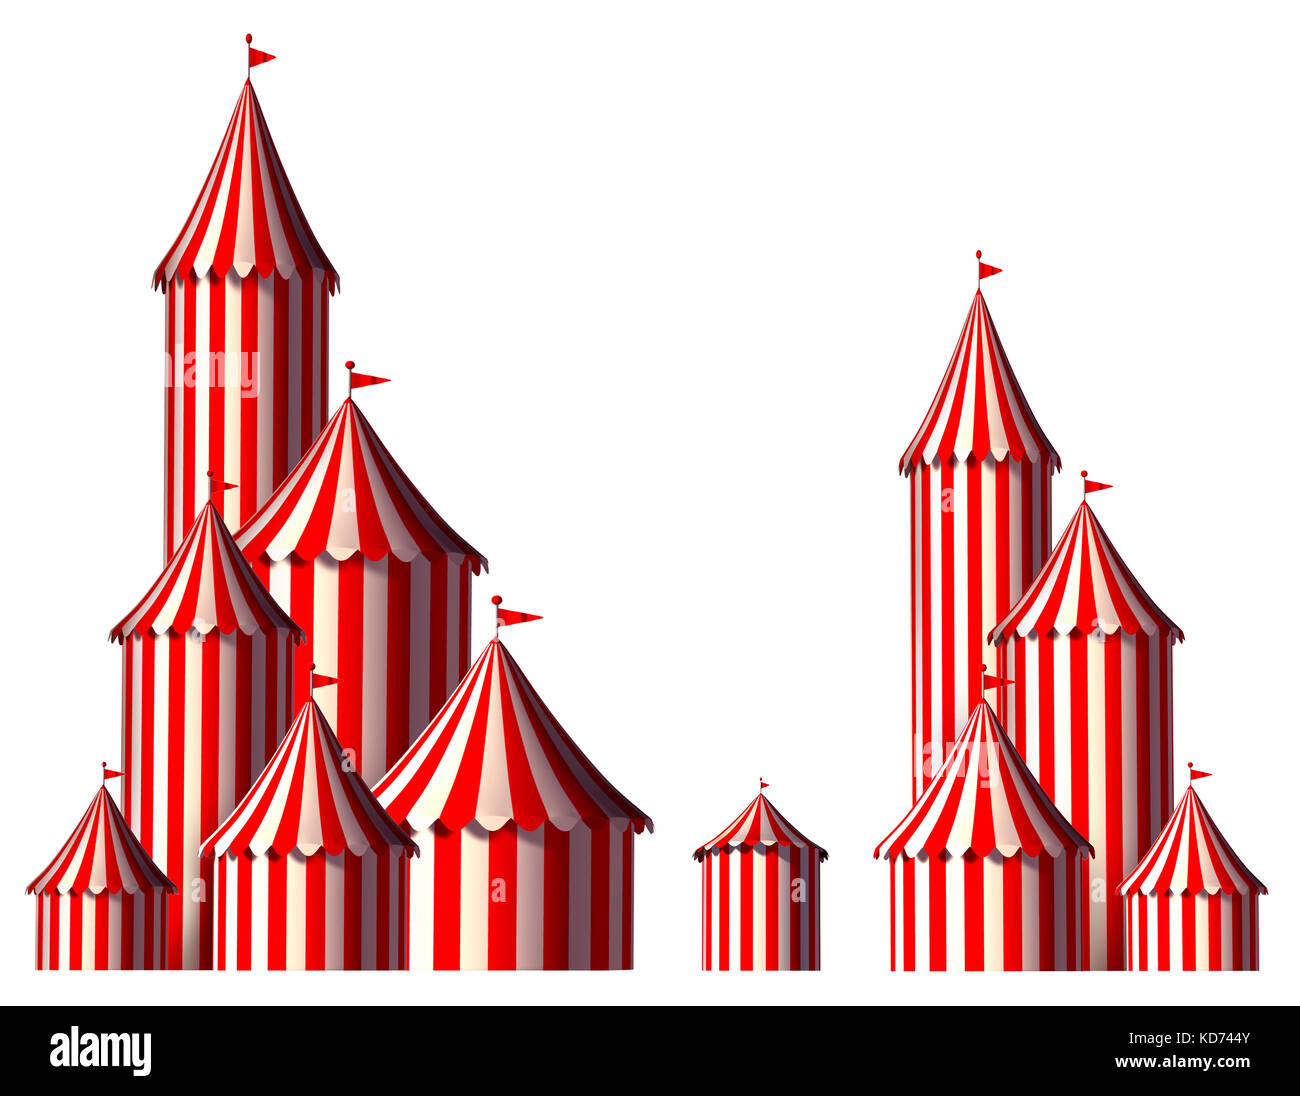 Circus tent design element as a group of big top carnival tents with an opening entrance  sc 1 st  Alamy & Circus tent design element as a group of big top carnival tents ...